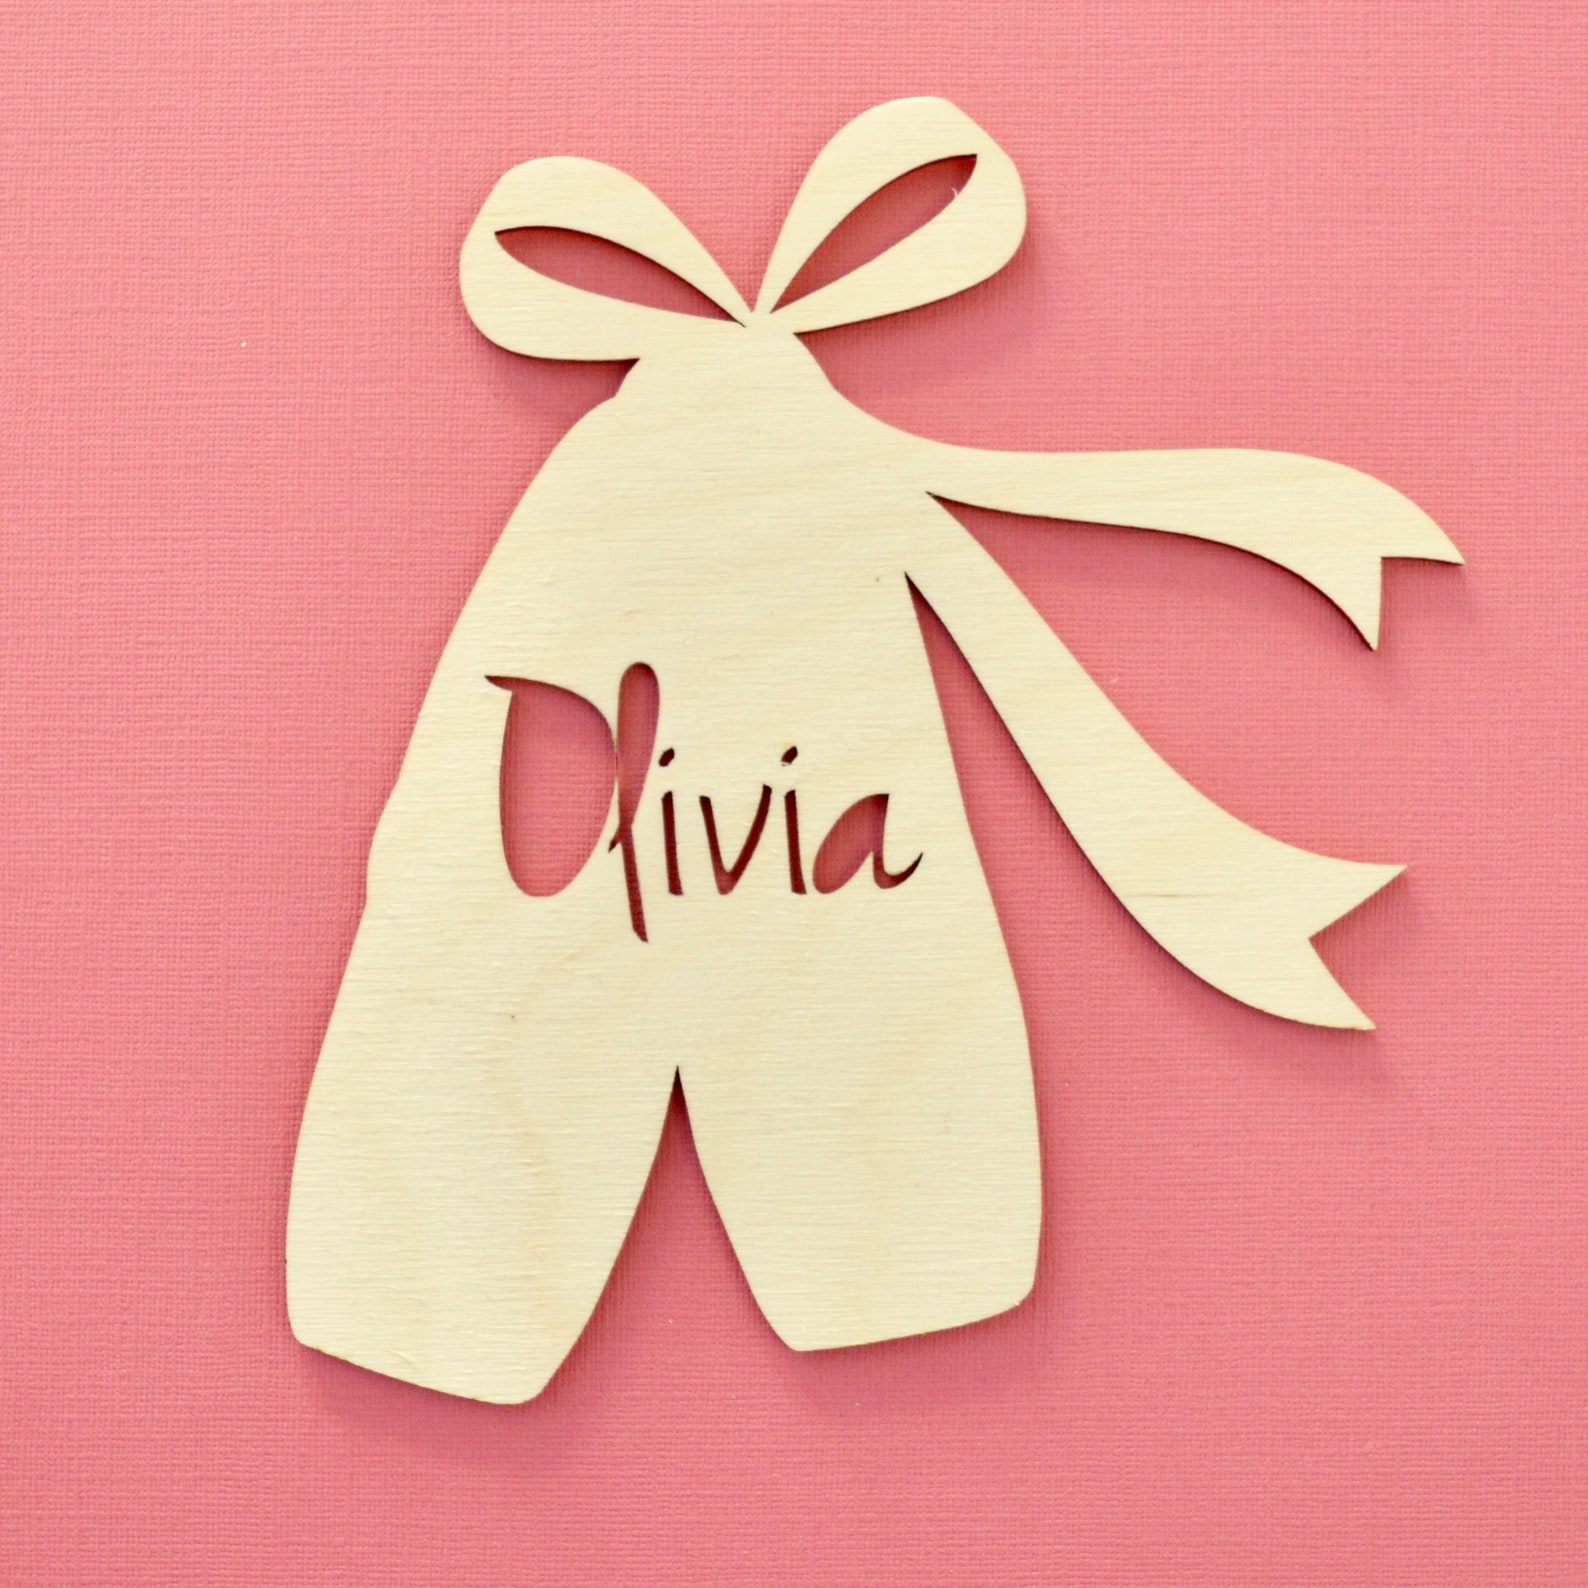 personalised ballerina door sign - ballet shoes - nursery door plaque - wooden name plaque - children's decor - girls room -